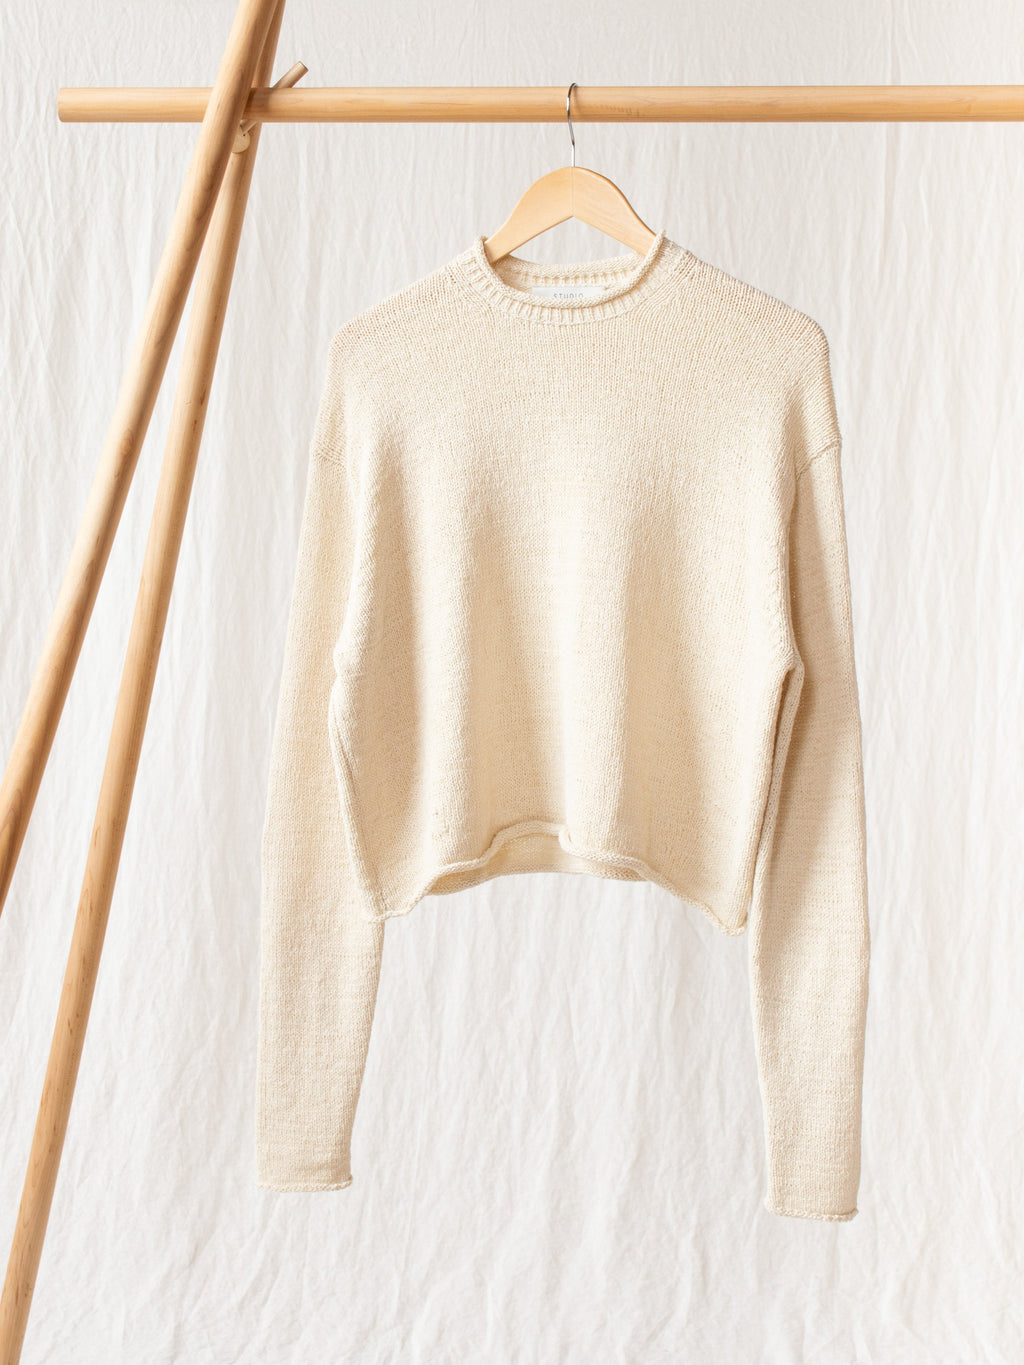 Namu Shop - Studio Nicholson Ruiz Modern Ribbon Knit - Cream